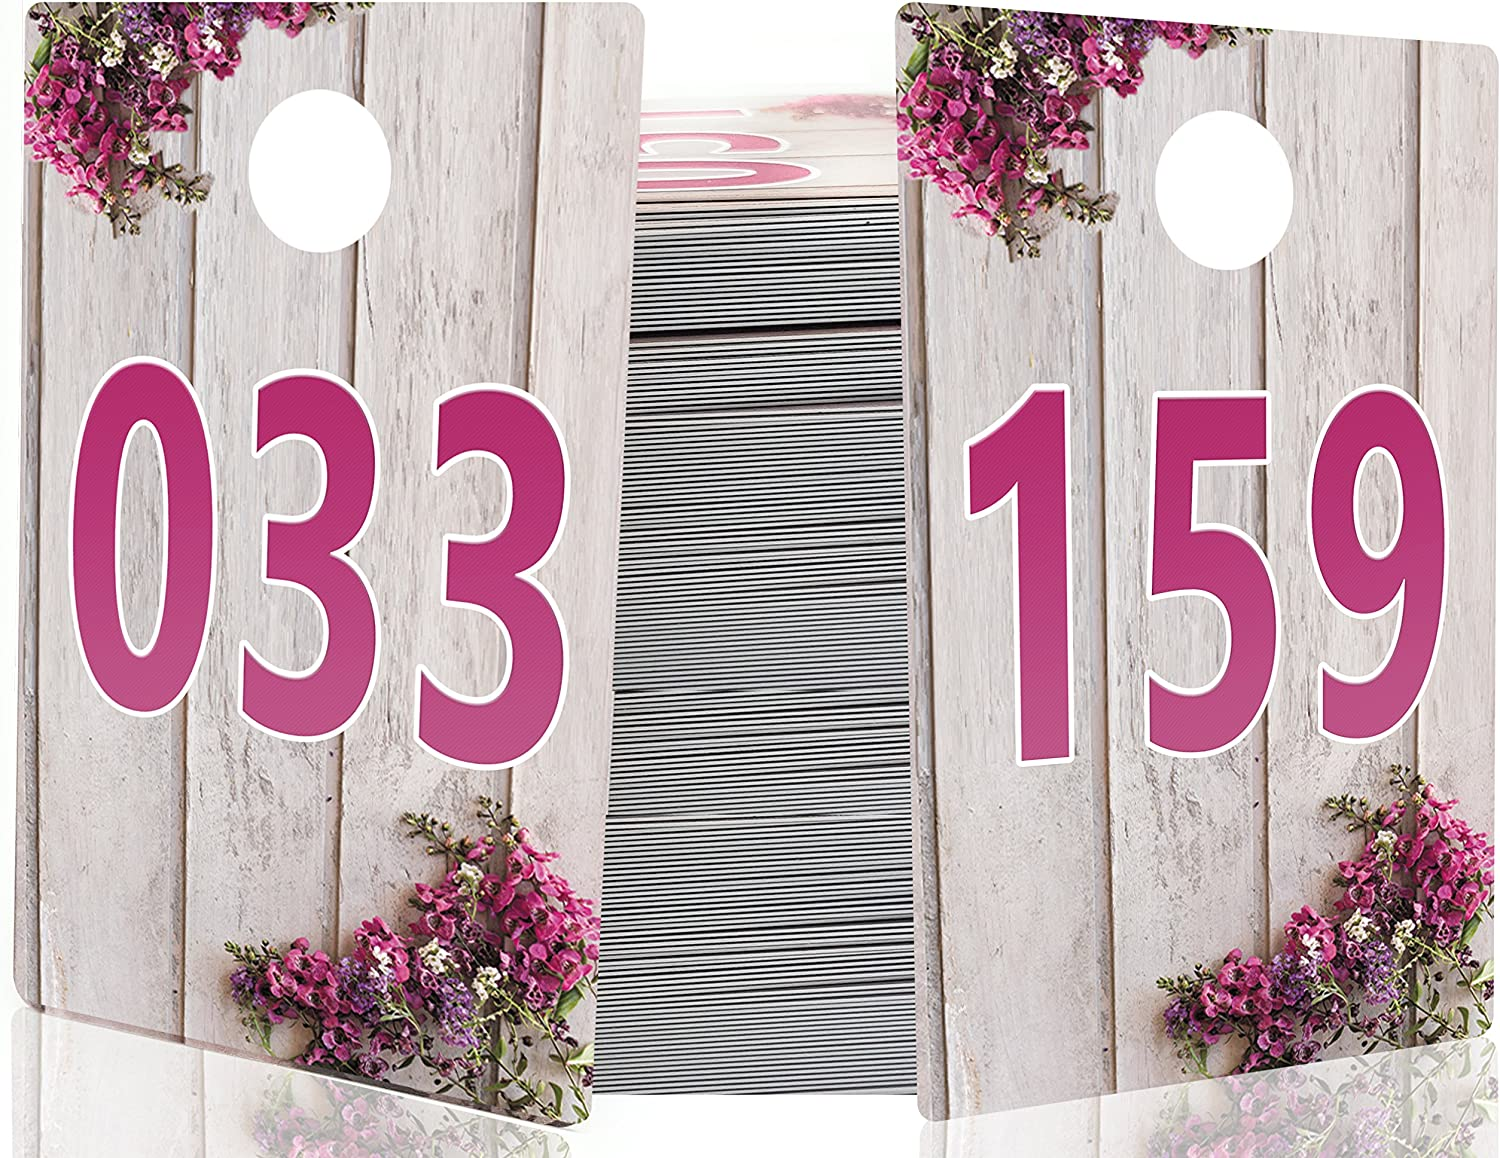 GoalWish Ventures Large Live Sale Number Tags for Facebook Live Sales and LuLaroe Supplies 001-100 Reusable Hanger Cards Normal and Reversed Mirrored Image 100 Consecutive Numbers